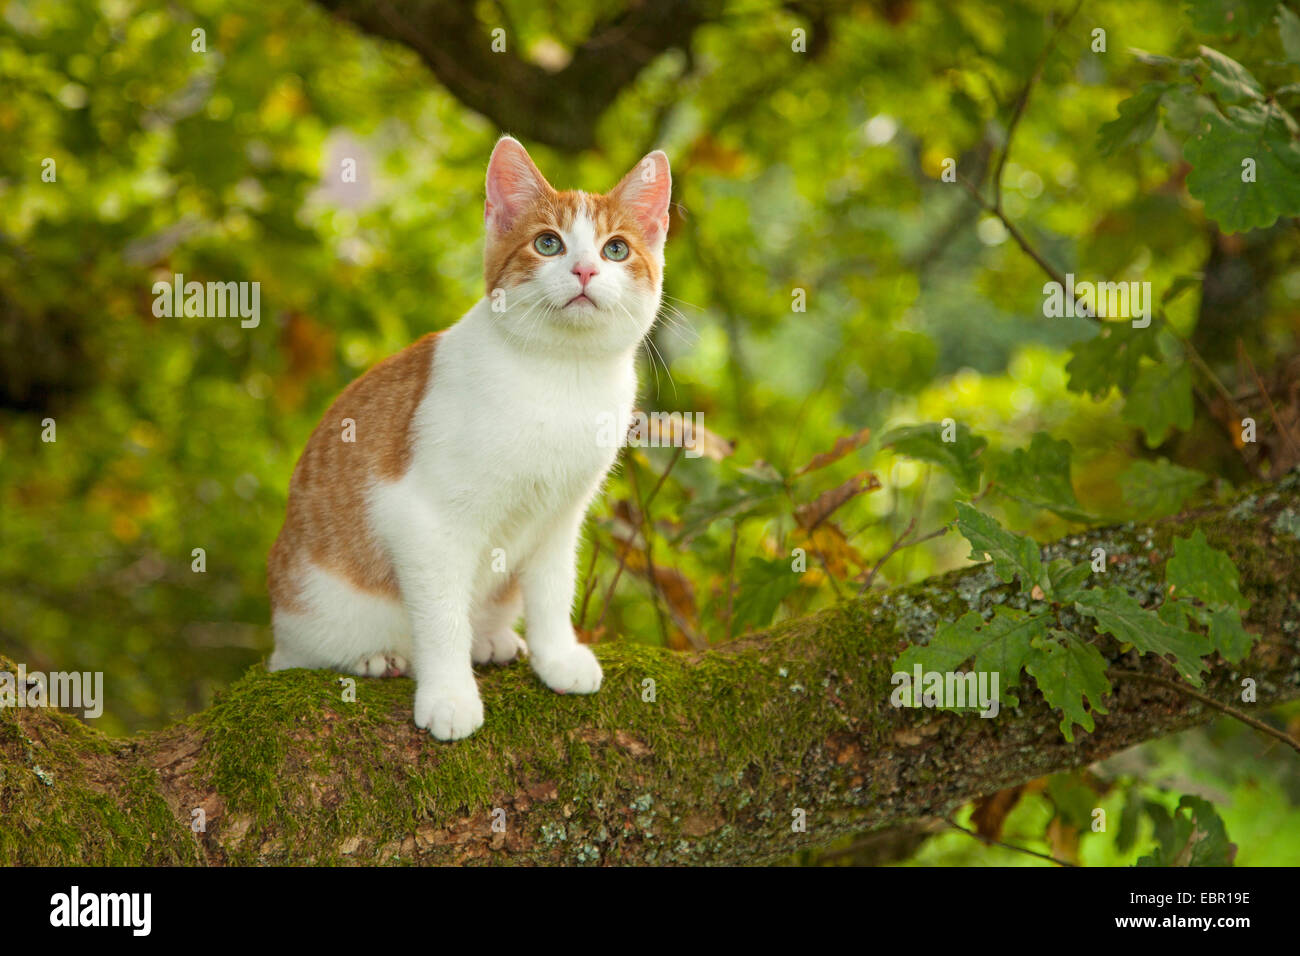 domestic cat, house cat (Felis silvestris f. catus), sitting on a twig, Germany - Stock Image